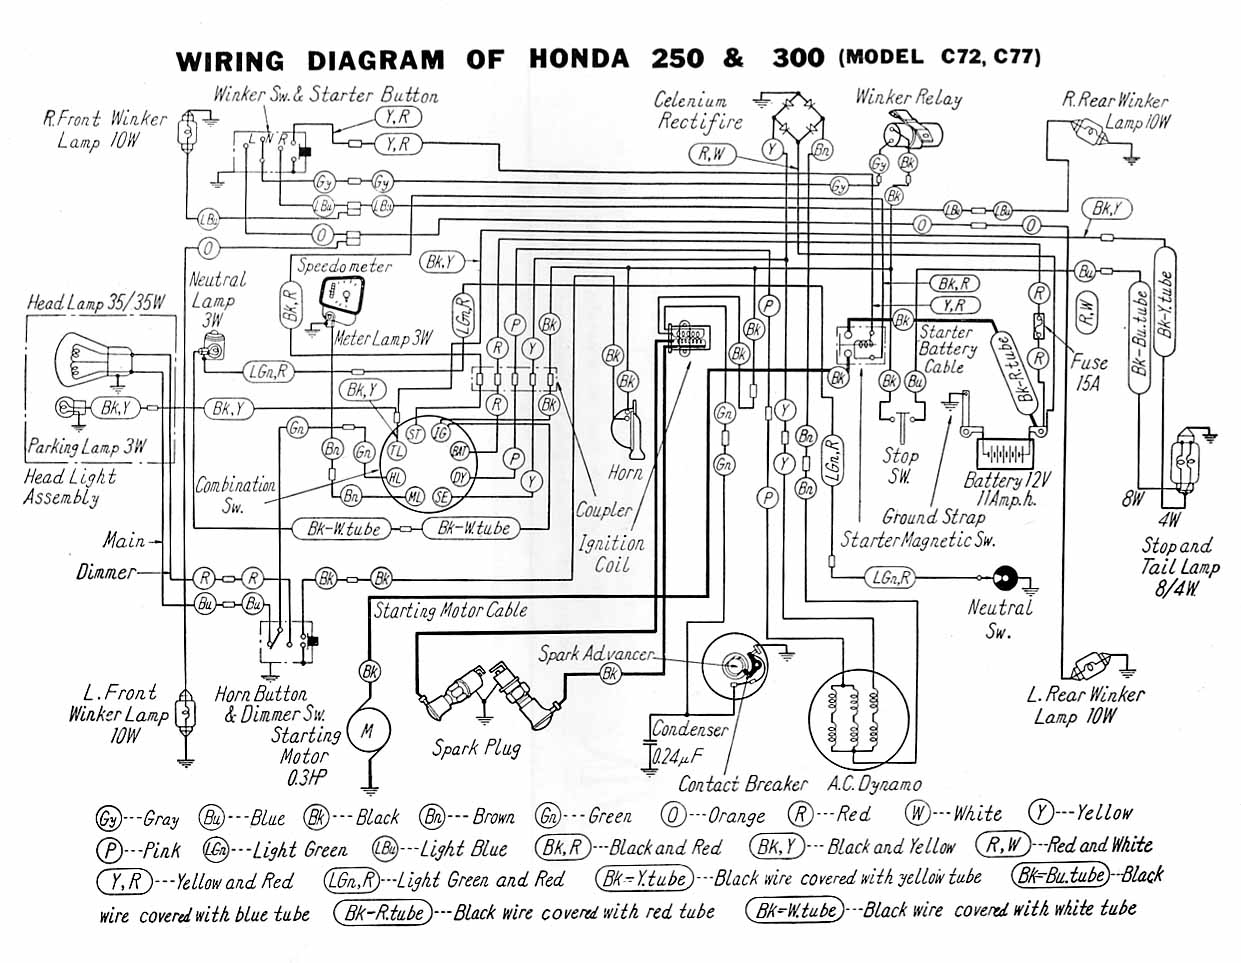 Honda C72 C77 Wiring Diagram index of images 3 3e ttr230 wiring diagram at gsmportal.co